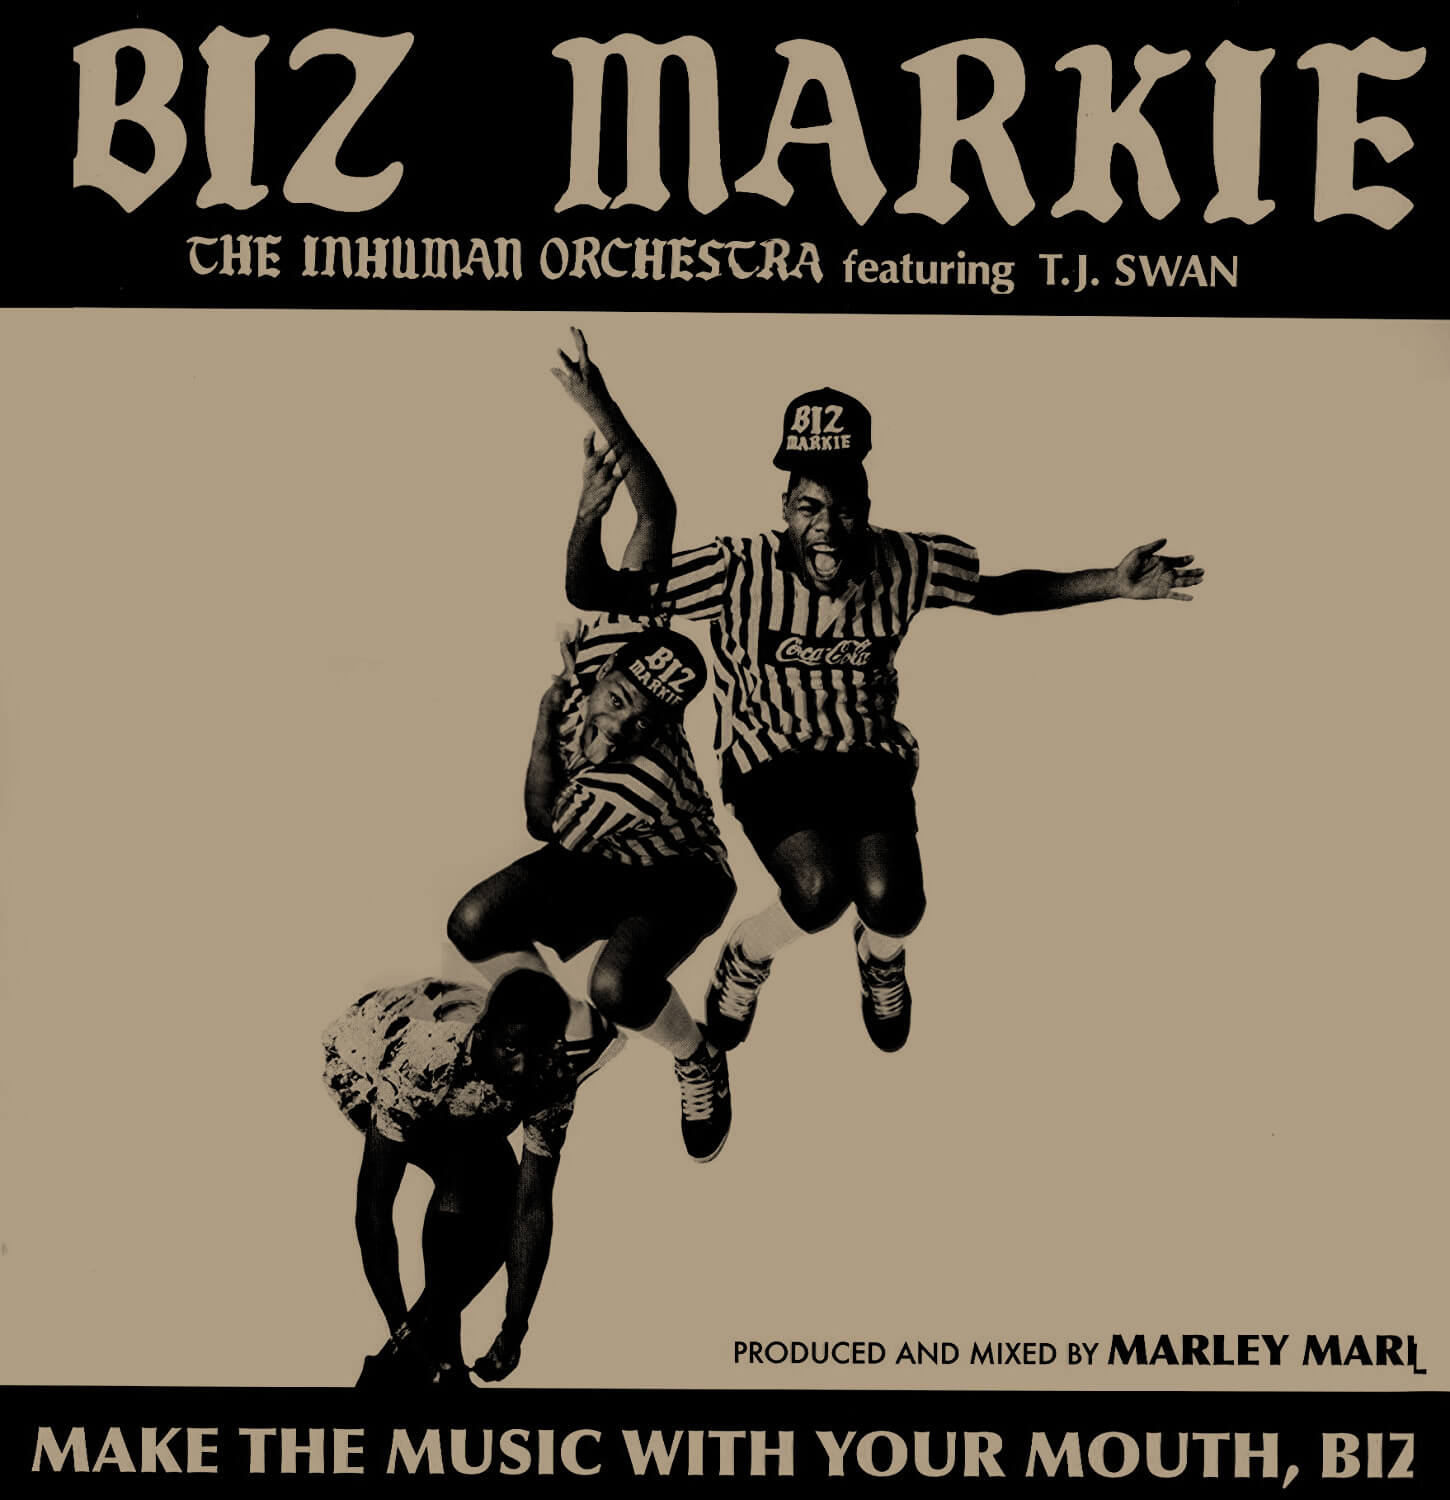 Marley Marl 'Classic Recipes' - Recreating Biz Markie's 'Make The Music With Your Mouth, Biz'